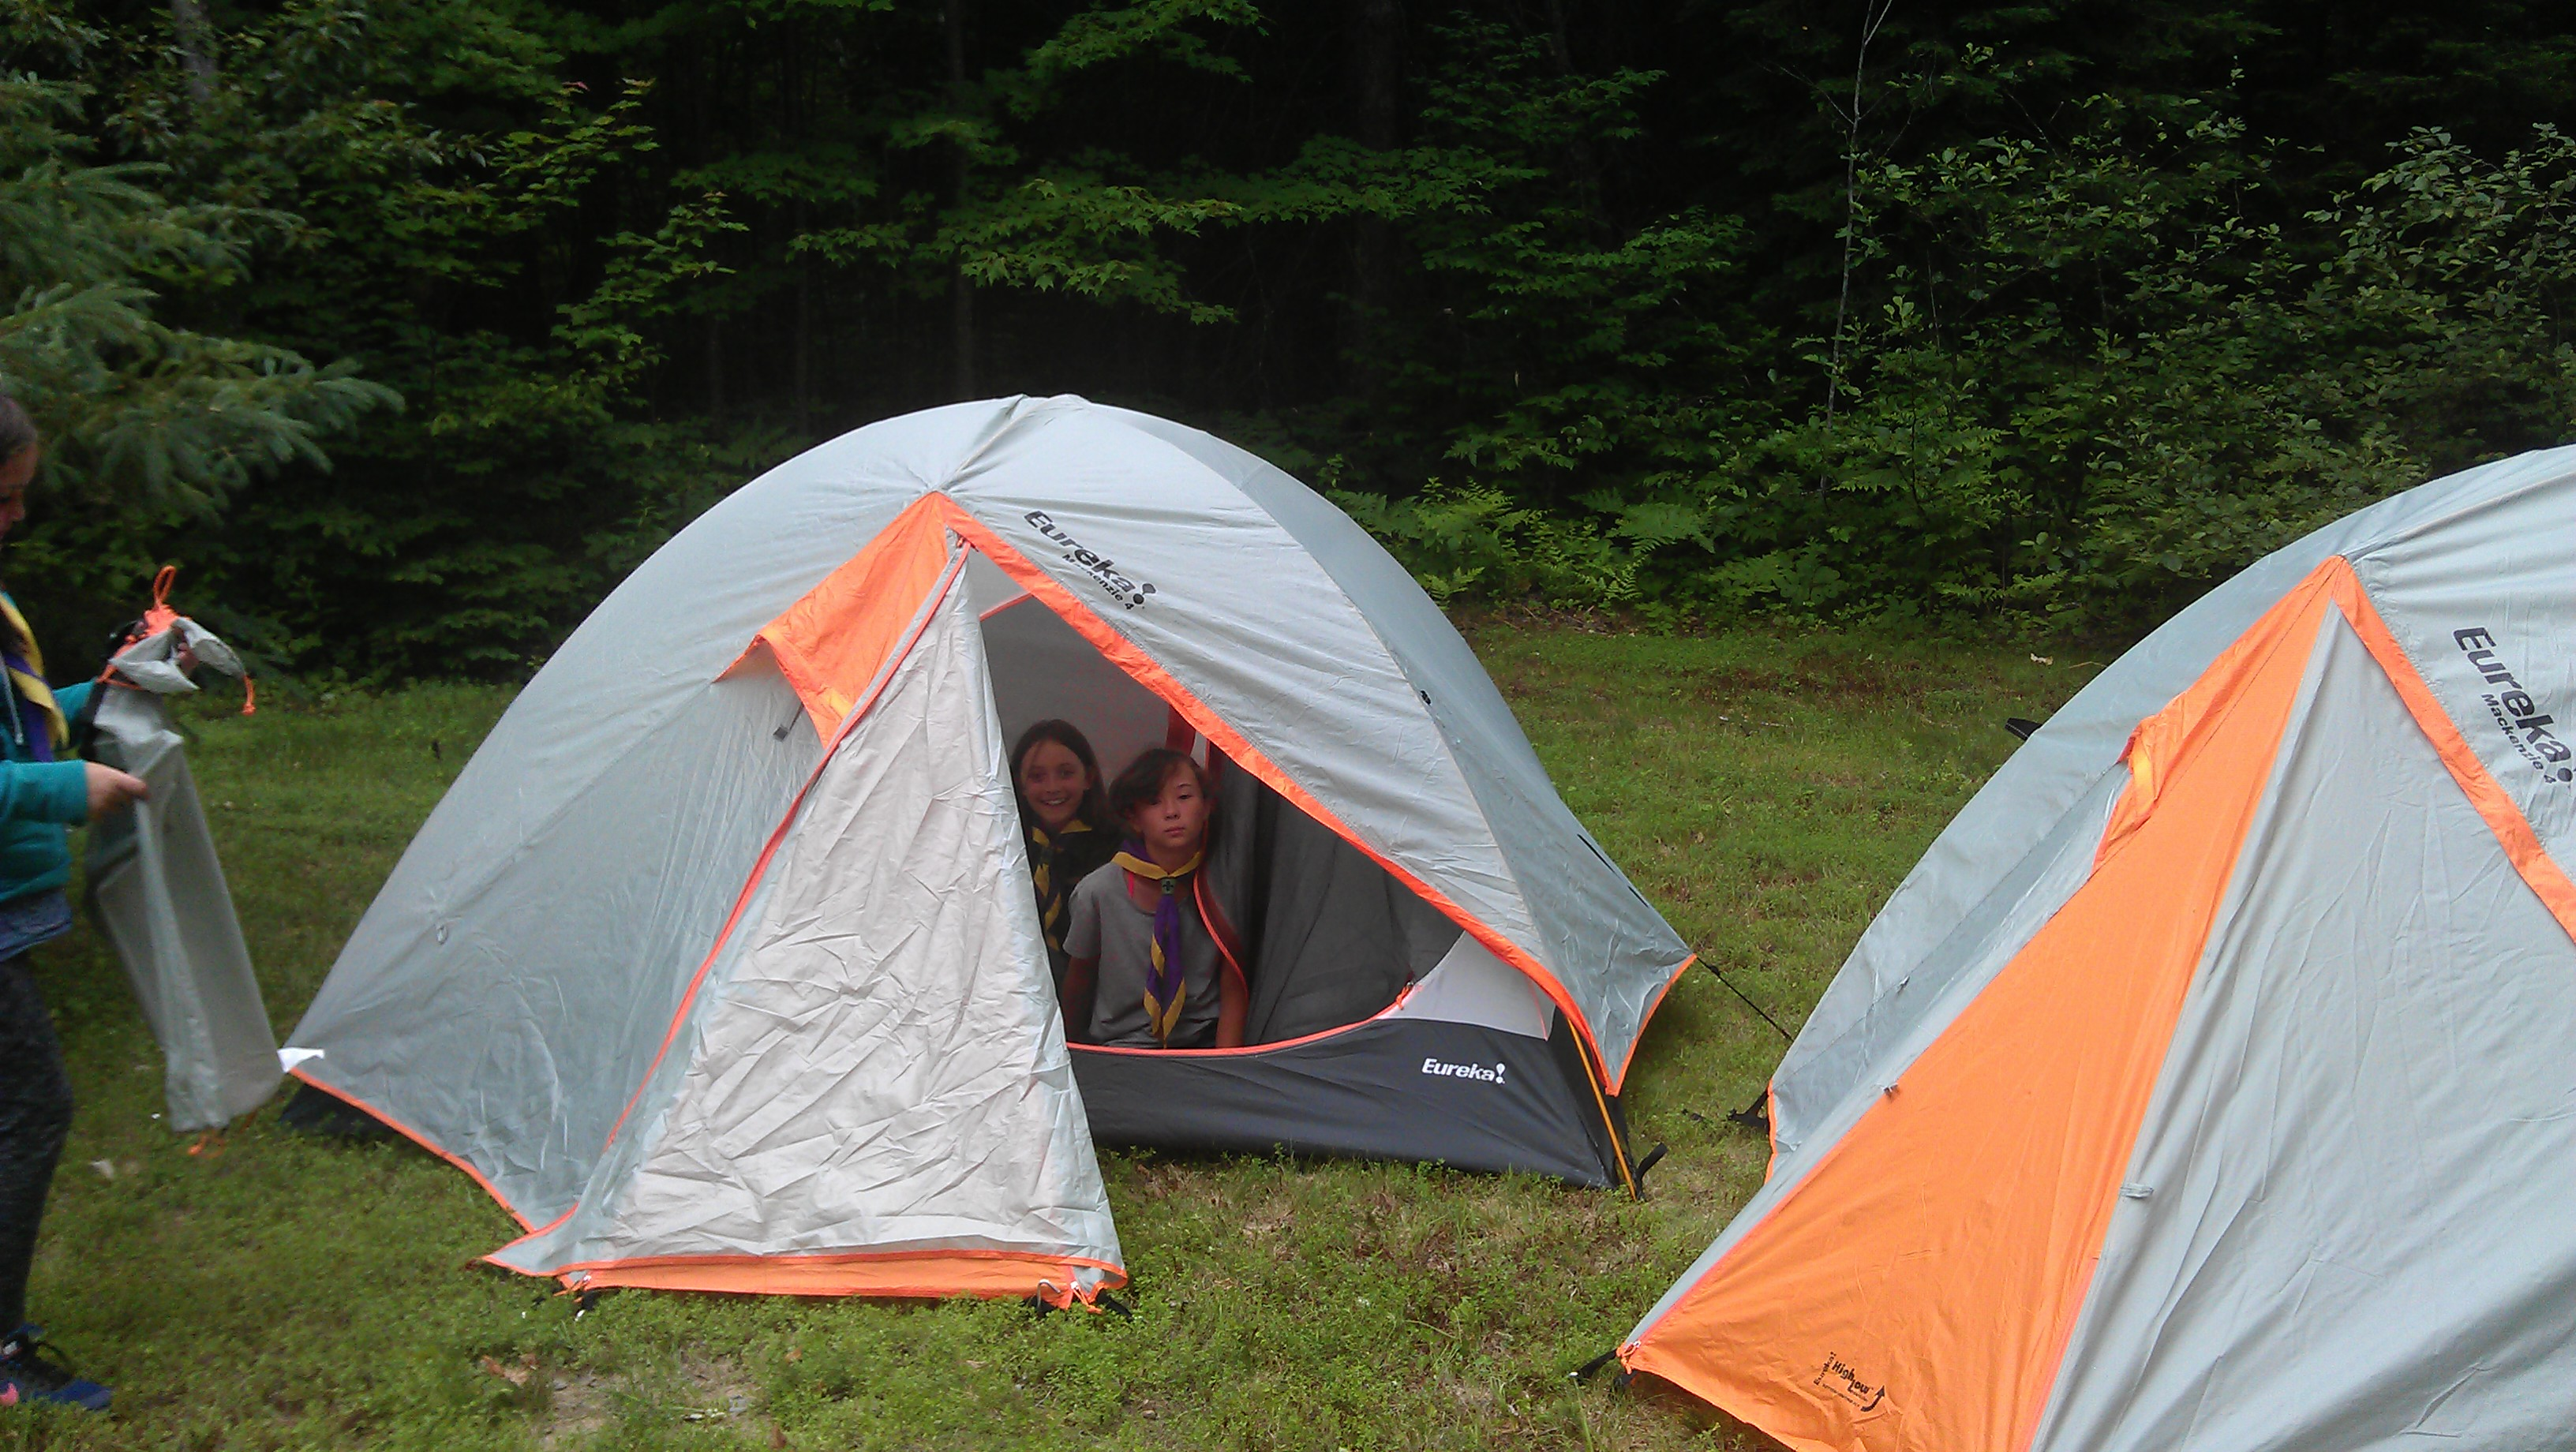 The tents are rated for four people. We find that three youth and equipment at a standing c& is ideal. On a canoe trip there is plenty of space for four ... & Equipment Review: Eureka MacKenzie 4 Tent | Scouting Life ...